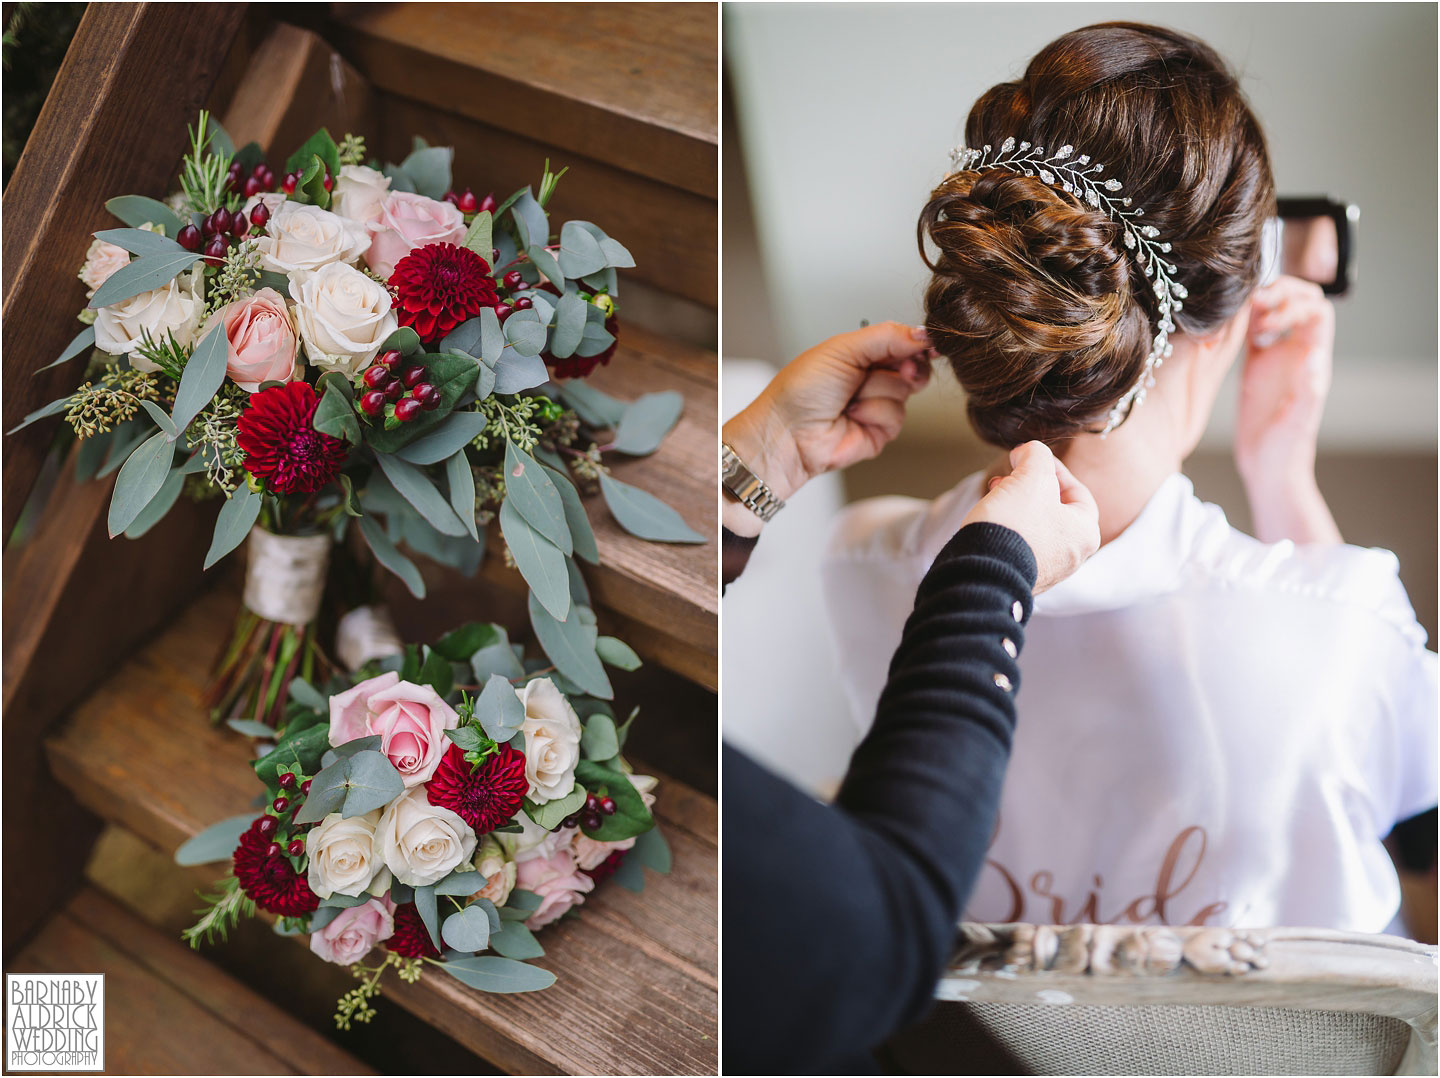 Wedding Flowers by Busy Liz's in Yorkshire, Wedding hair by Debbie Chalmers